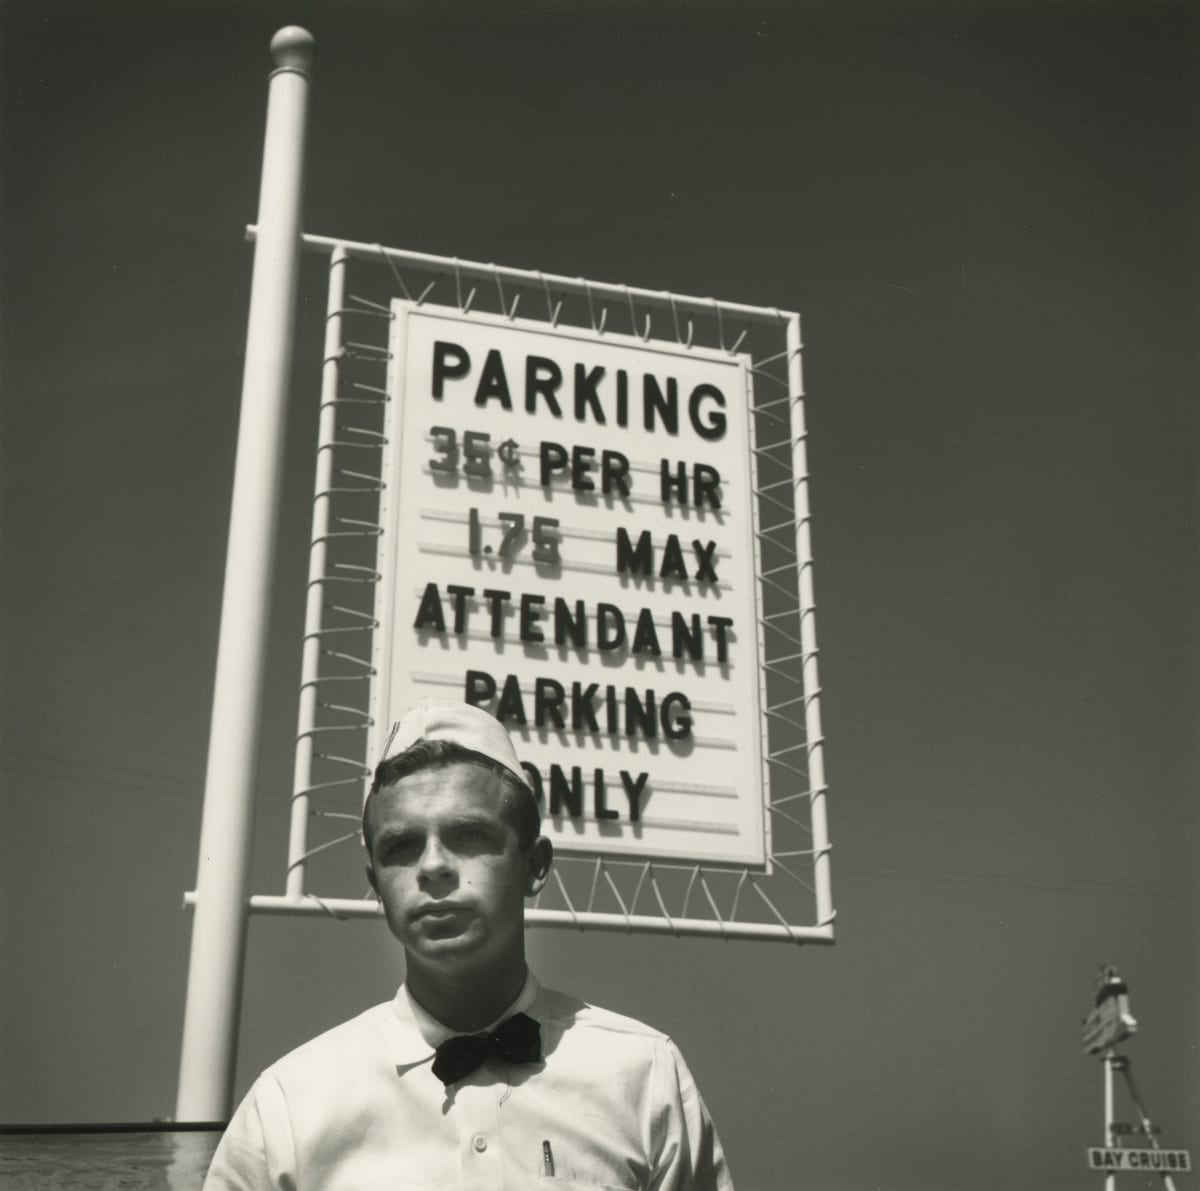 Arthur Tress, Parking Attendant, Fisherman's Wharf, San Francisco, 1964